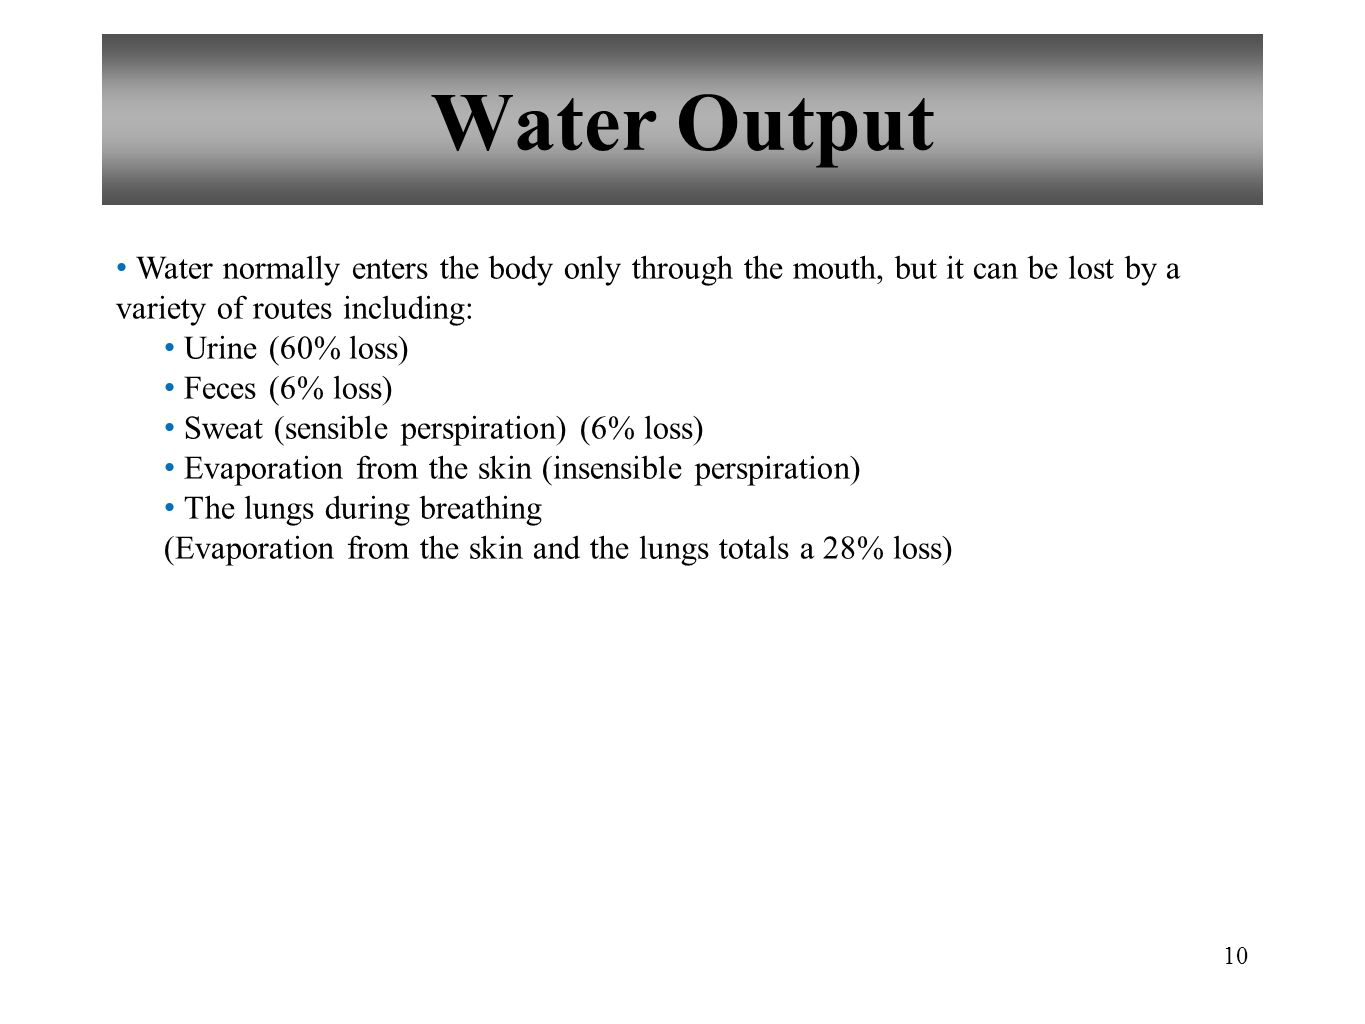 Water Output Water normally enters the body only through the mouth, but it can be lost by a variety of routes including: